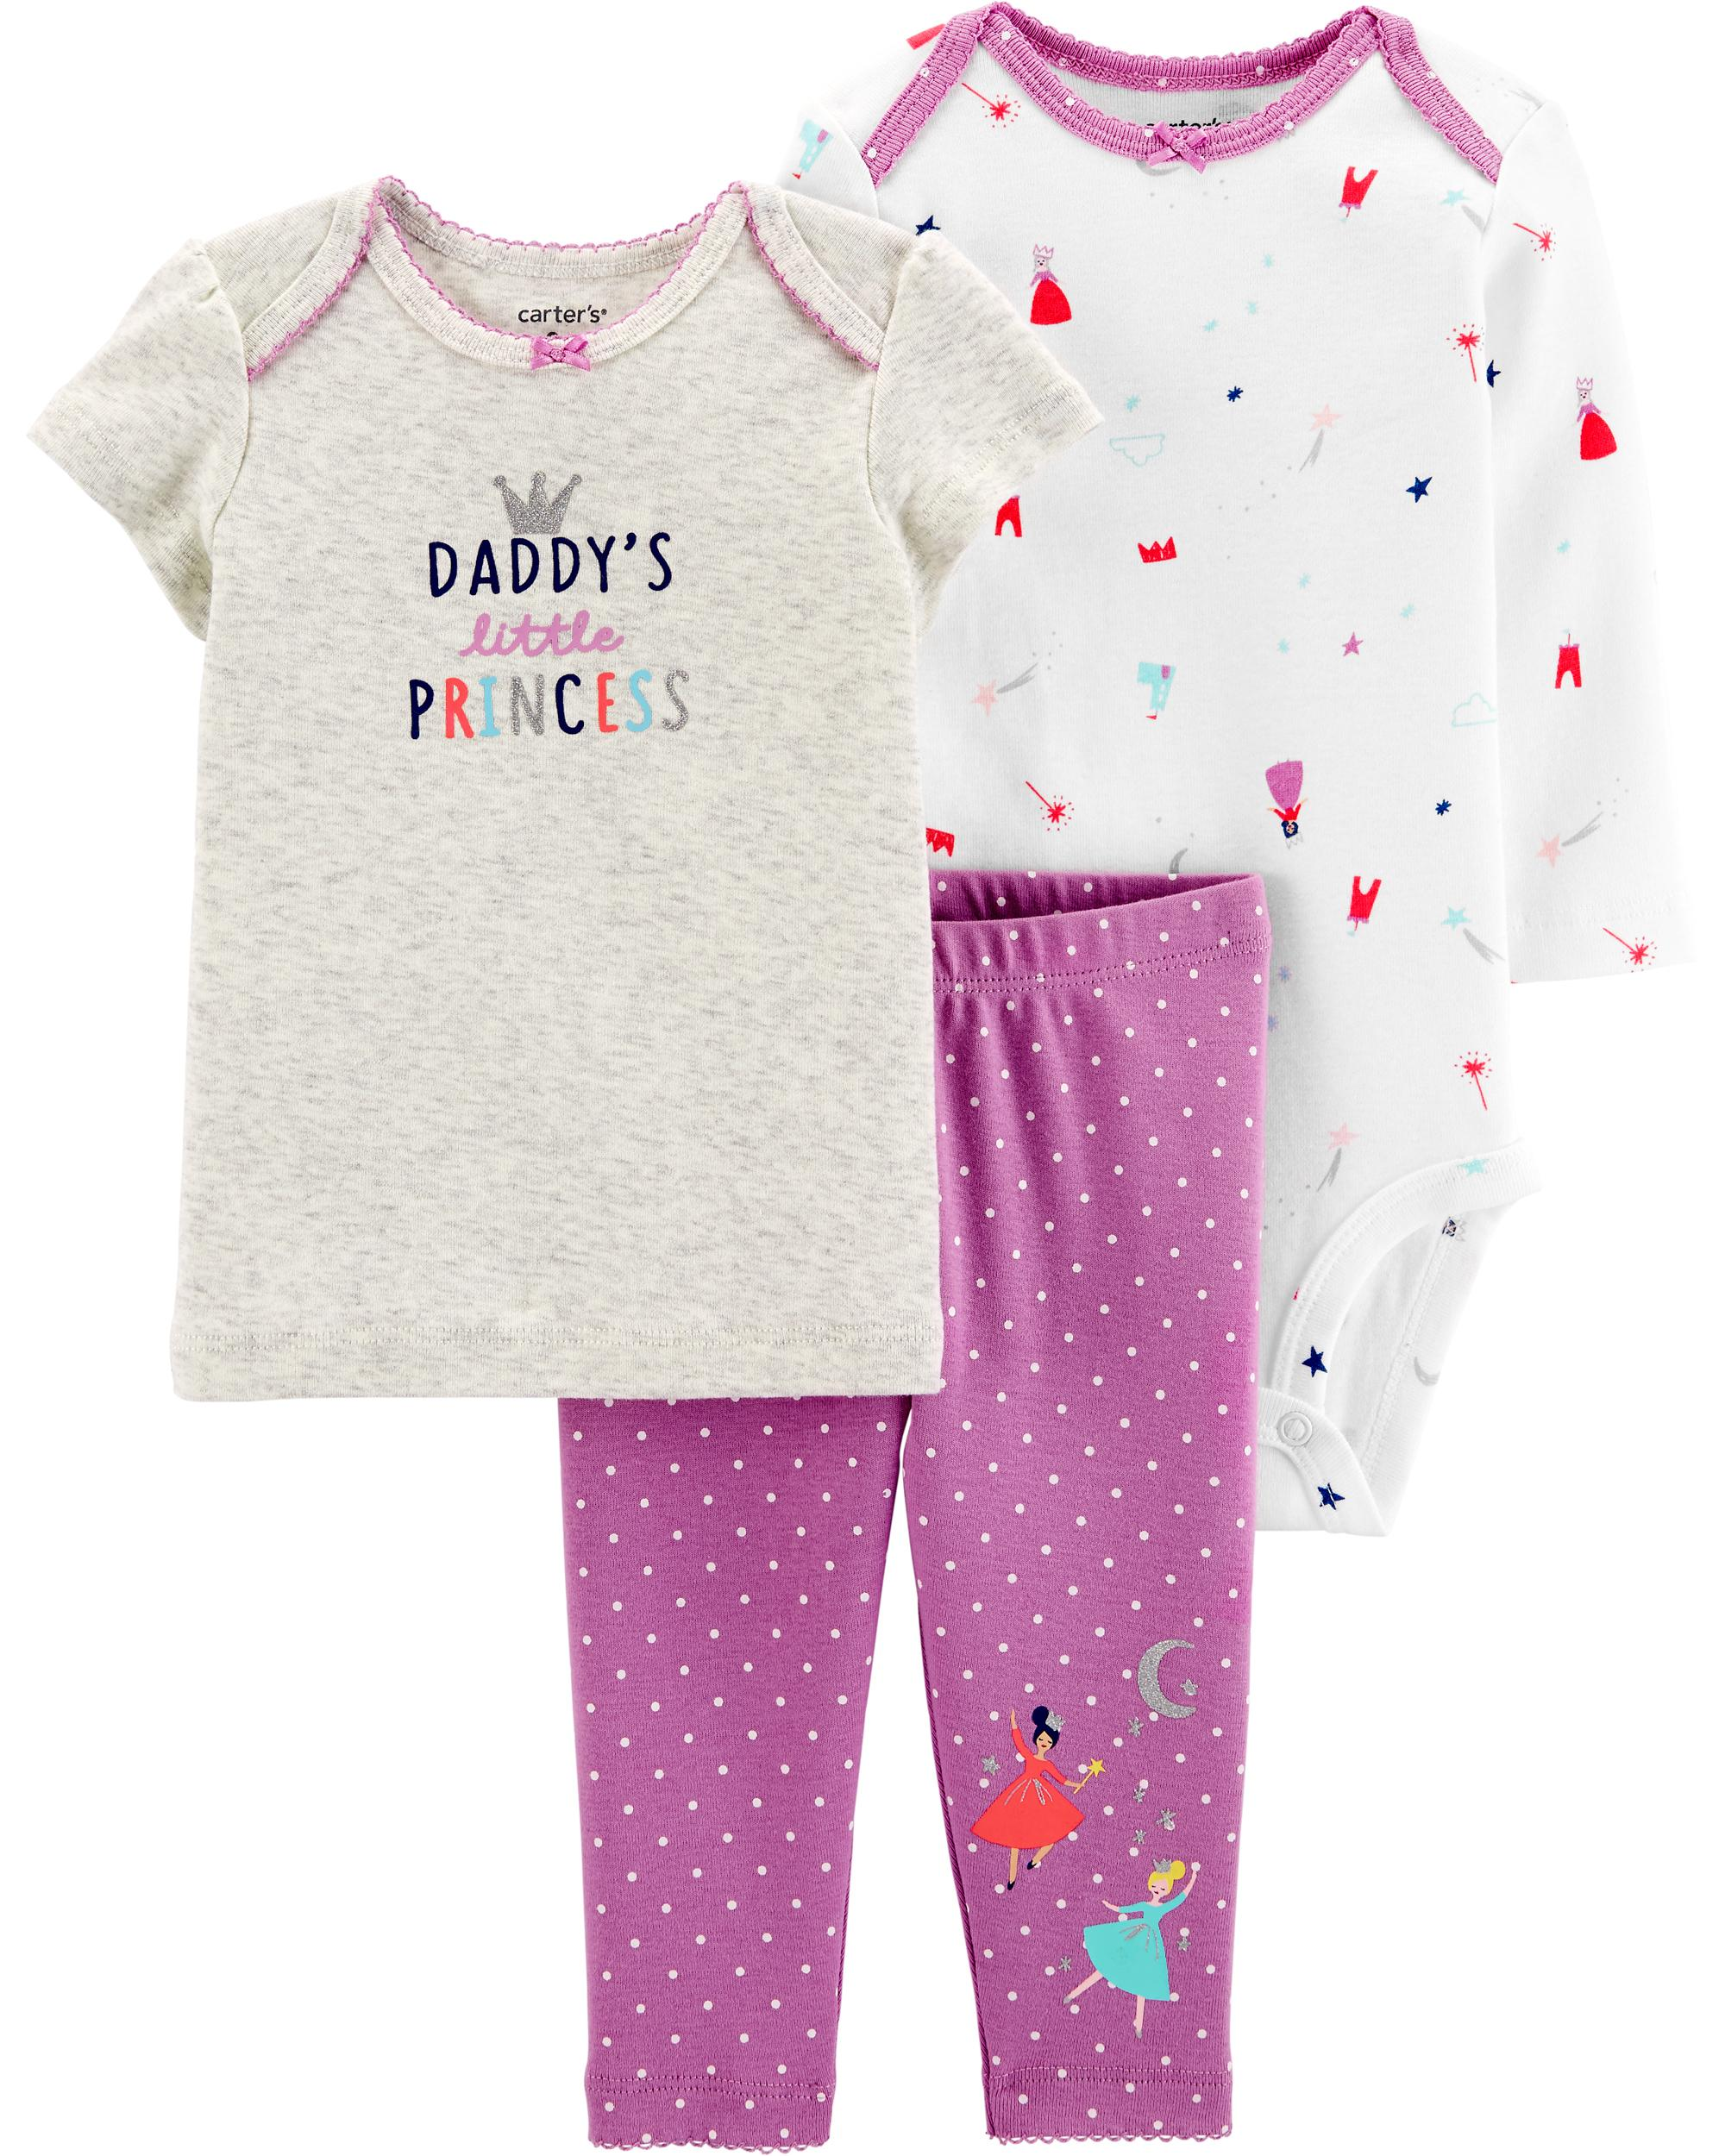 94542f9a6e2fd 3-Piece Princess Little Character Set | carters.com